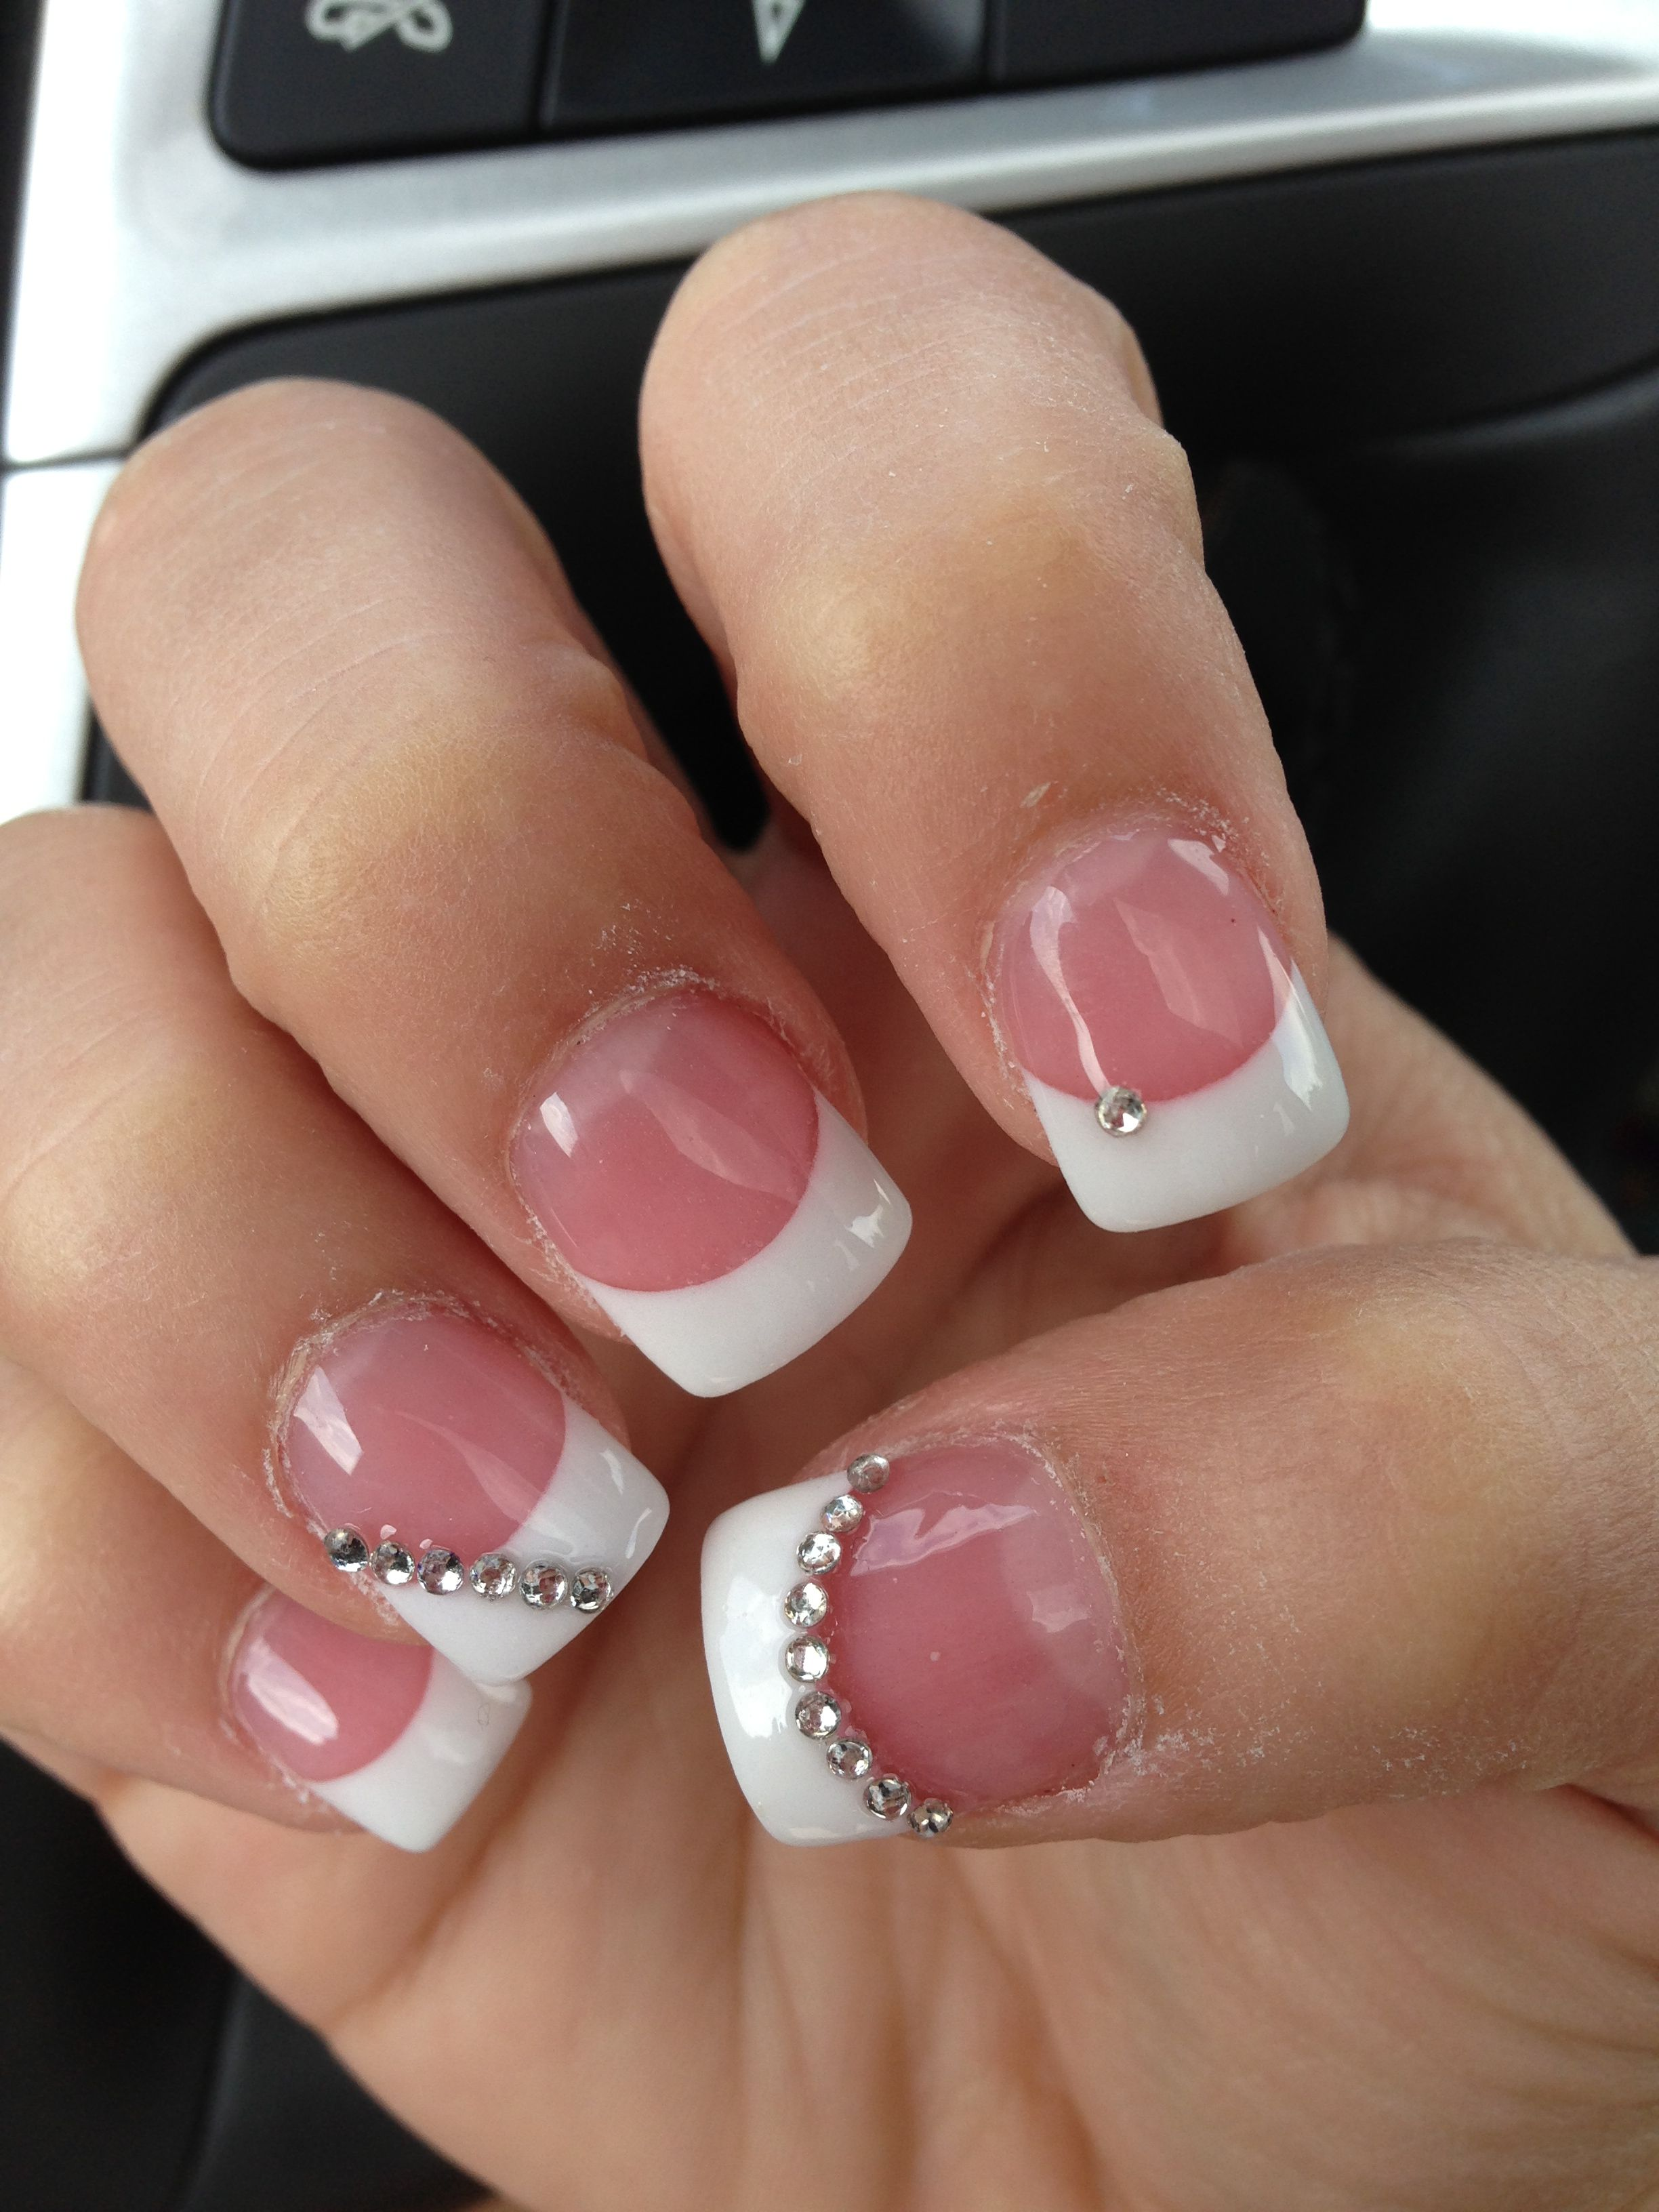 Simple French Manicure With Diamond Accents